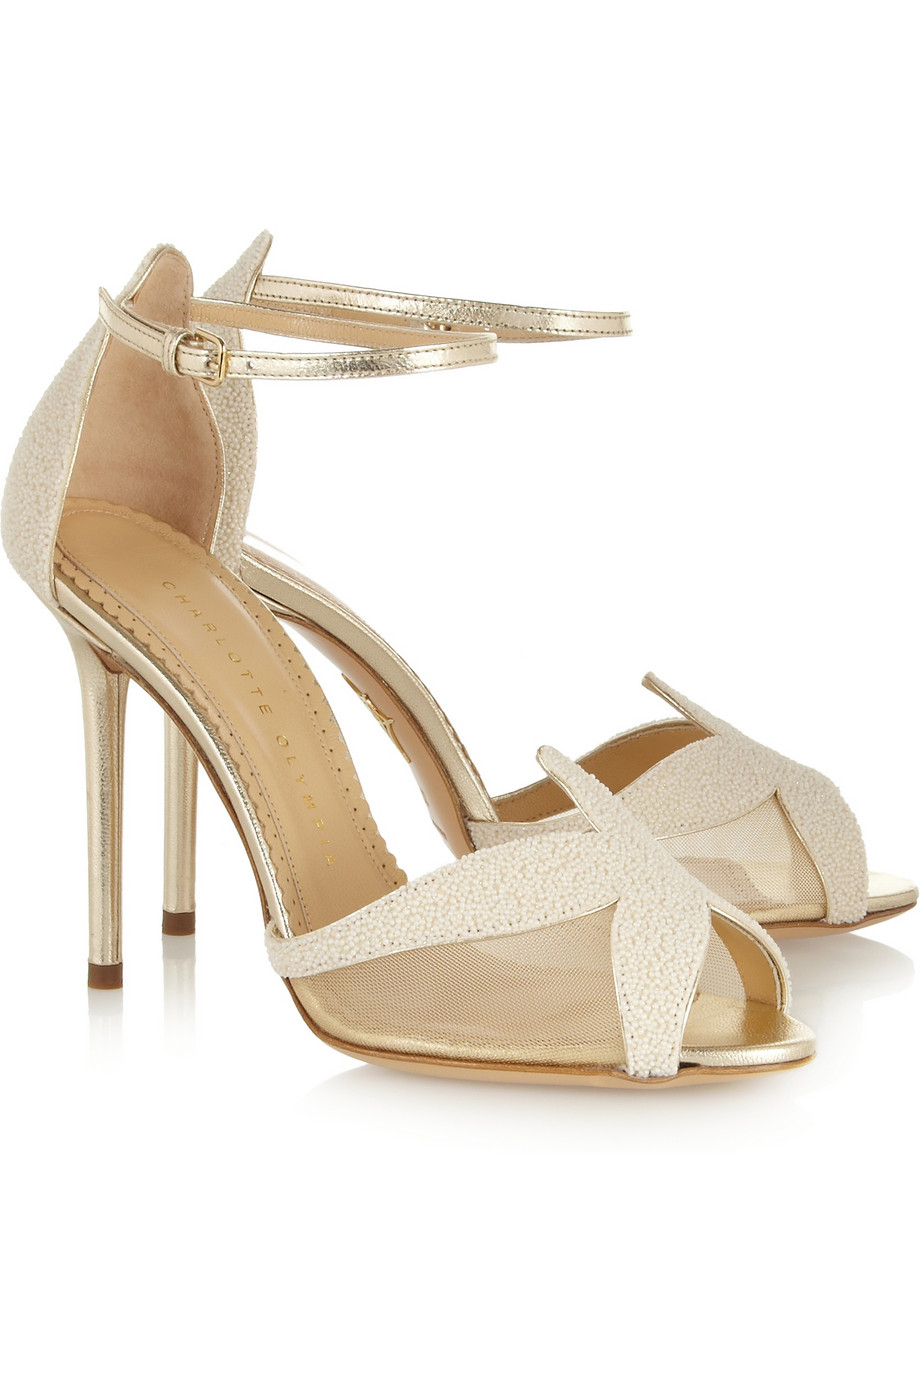 Charlotte Olympia Sandrine Beadembellished Leather Sandals